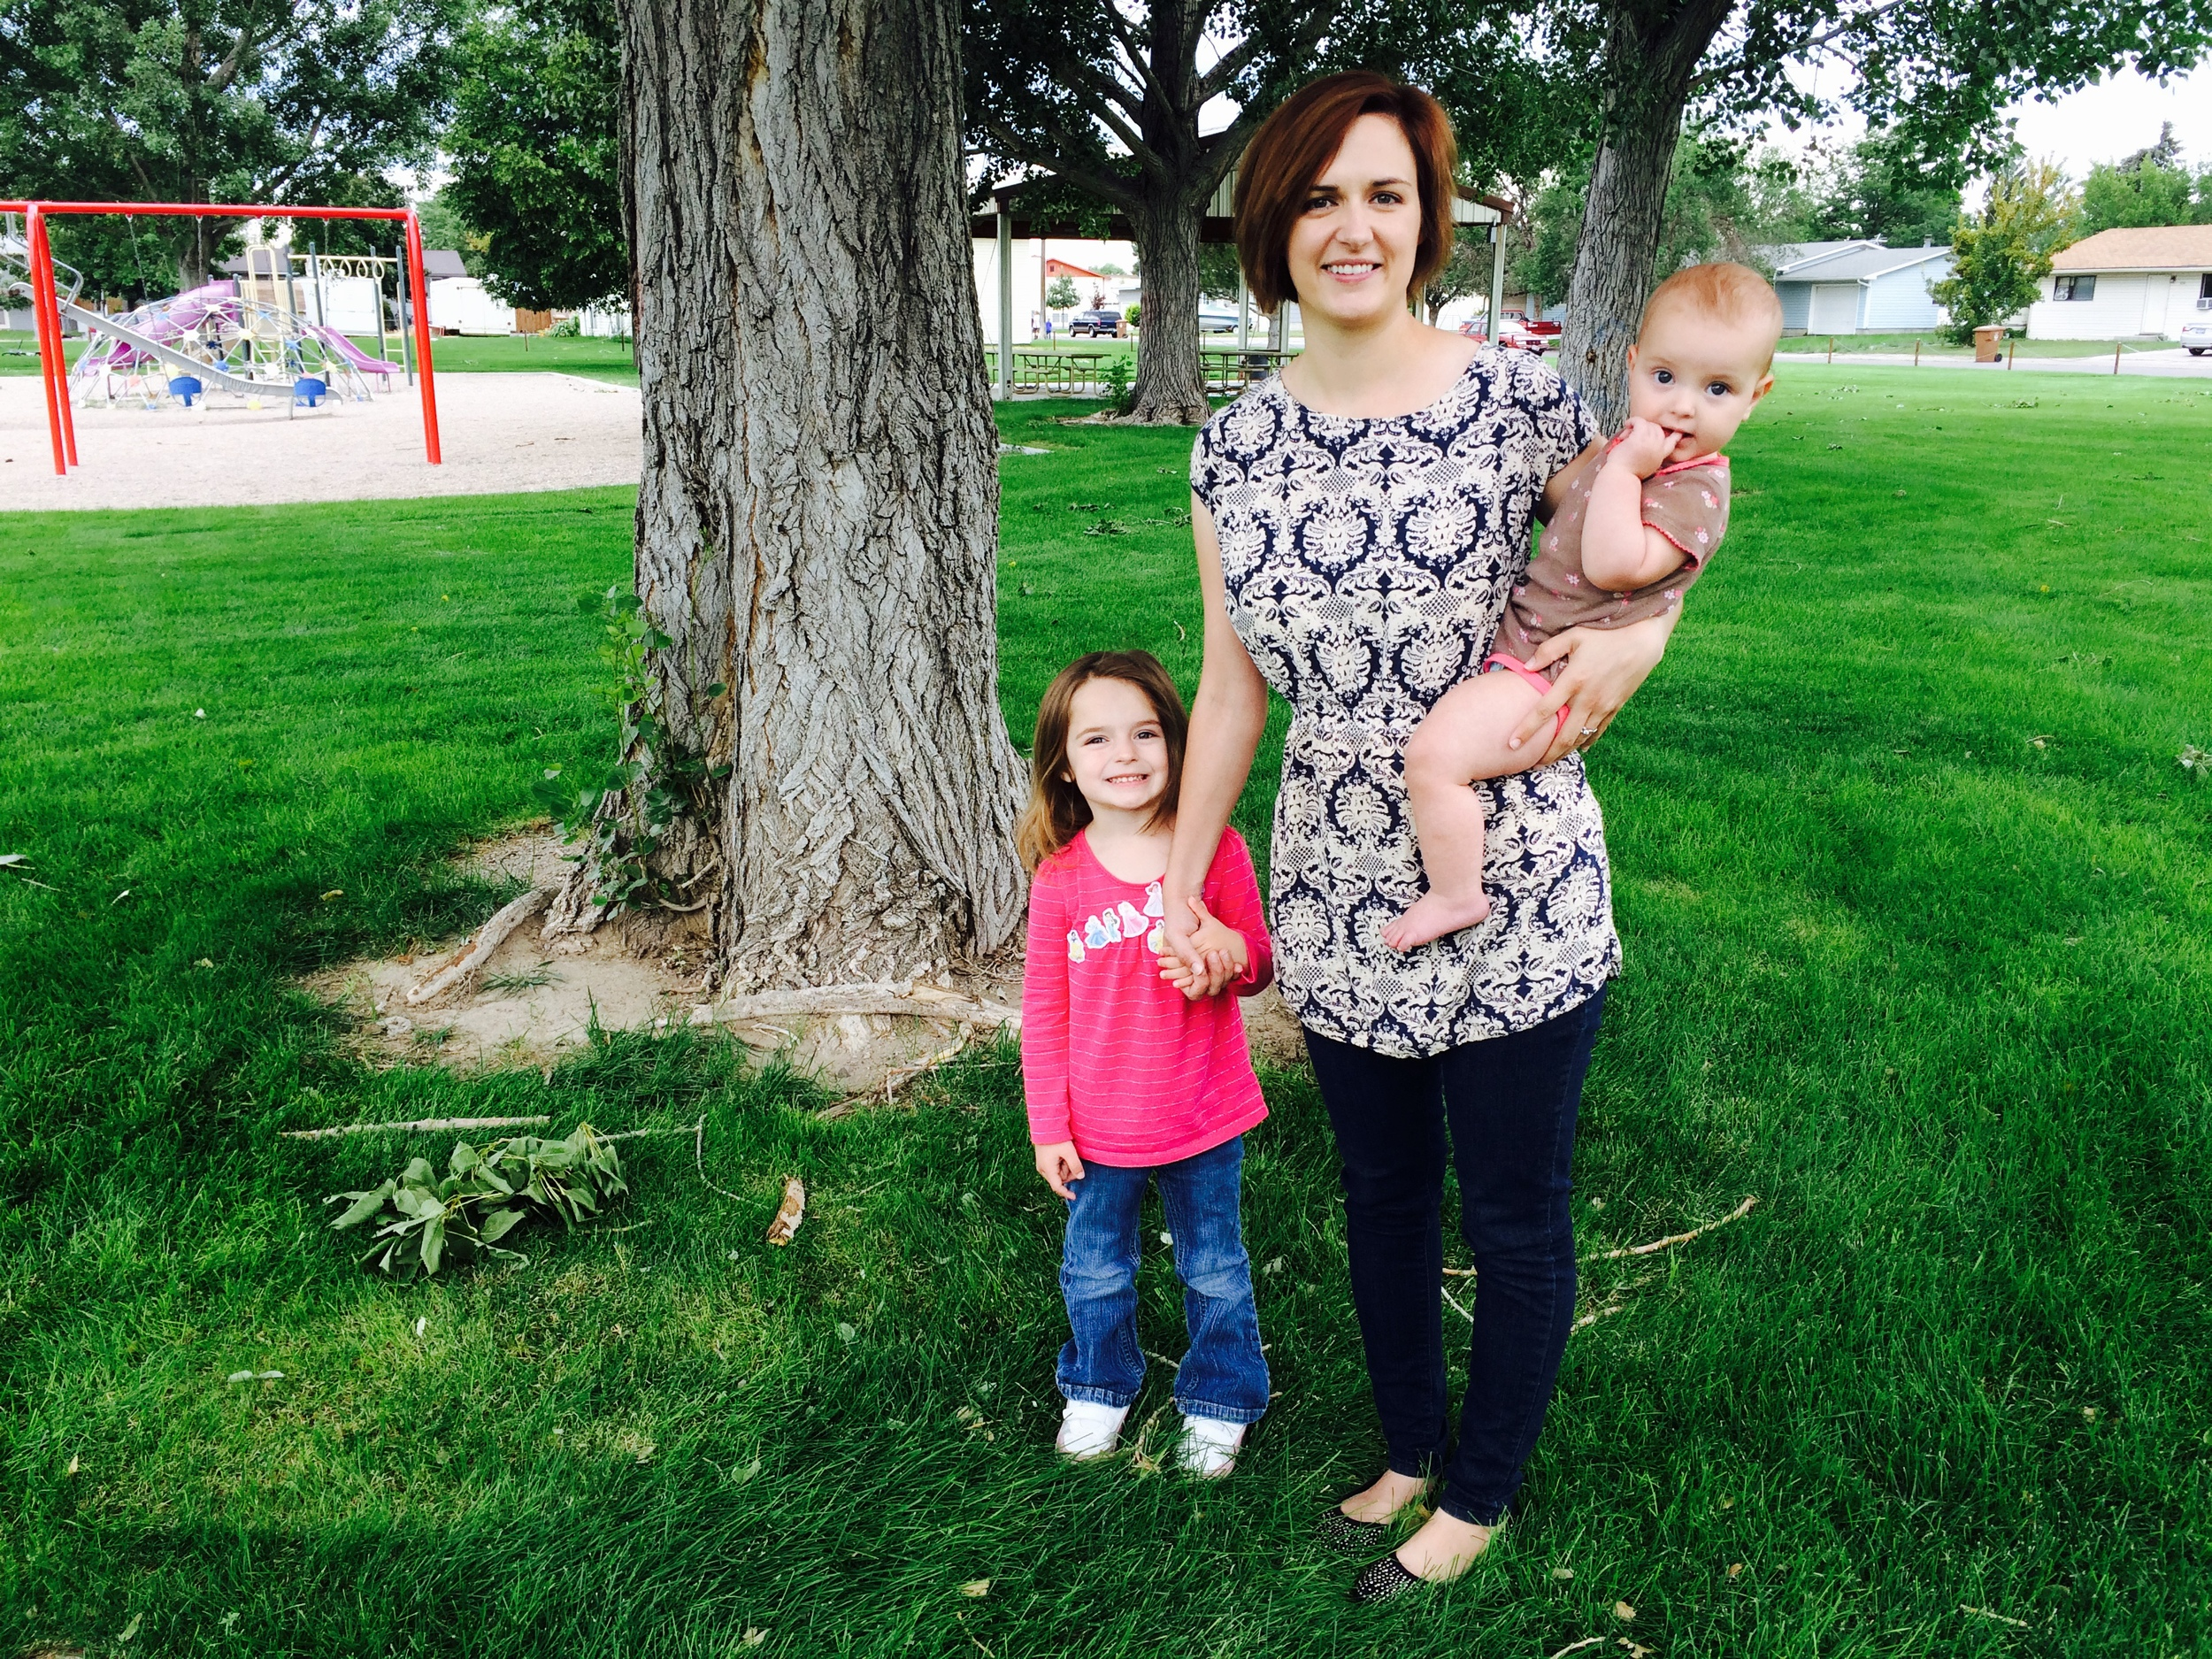 Me with my two sweetgirls, Evelyn and Paisley